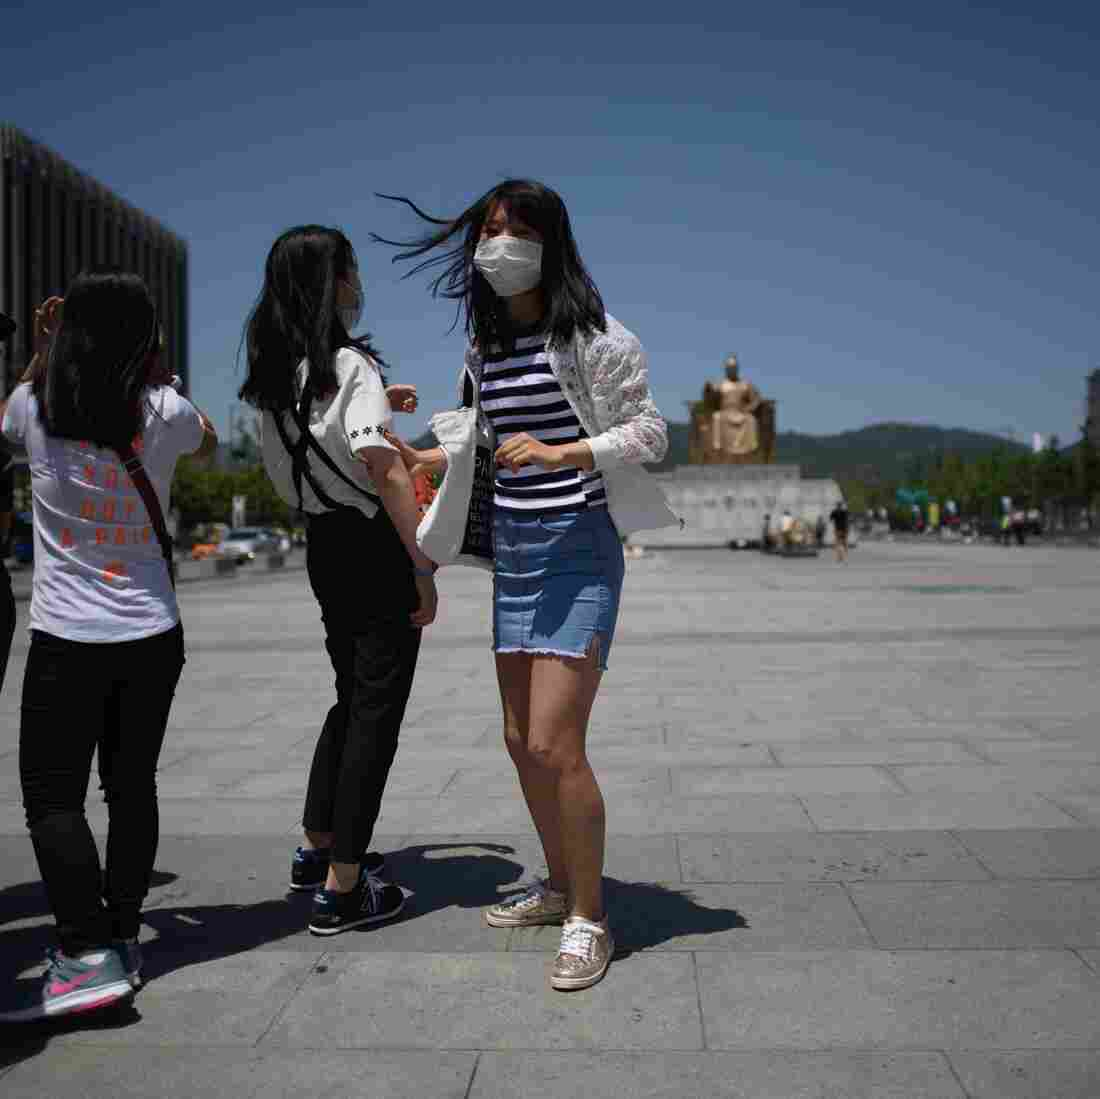 MERS In South Korea Is Bad News But It's Not Yet Time To Panic